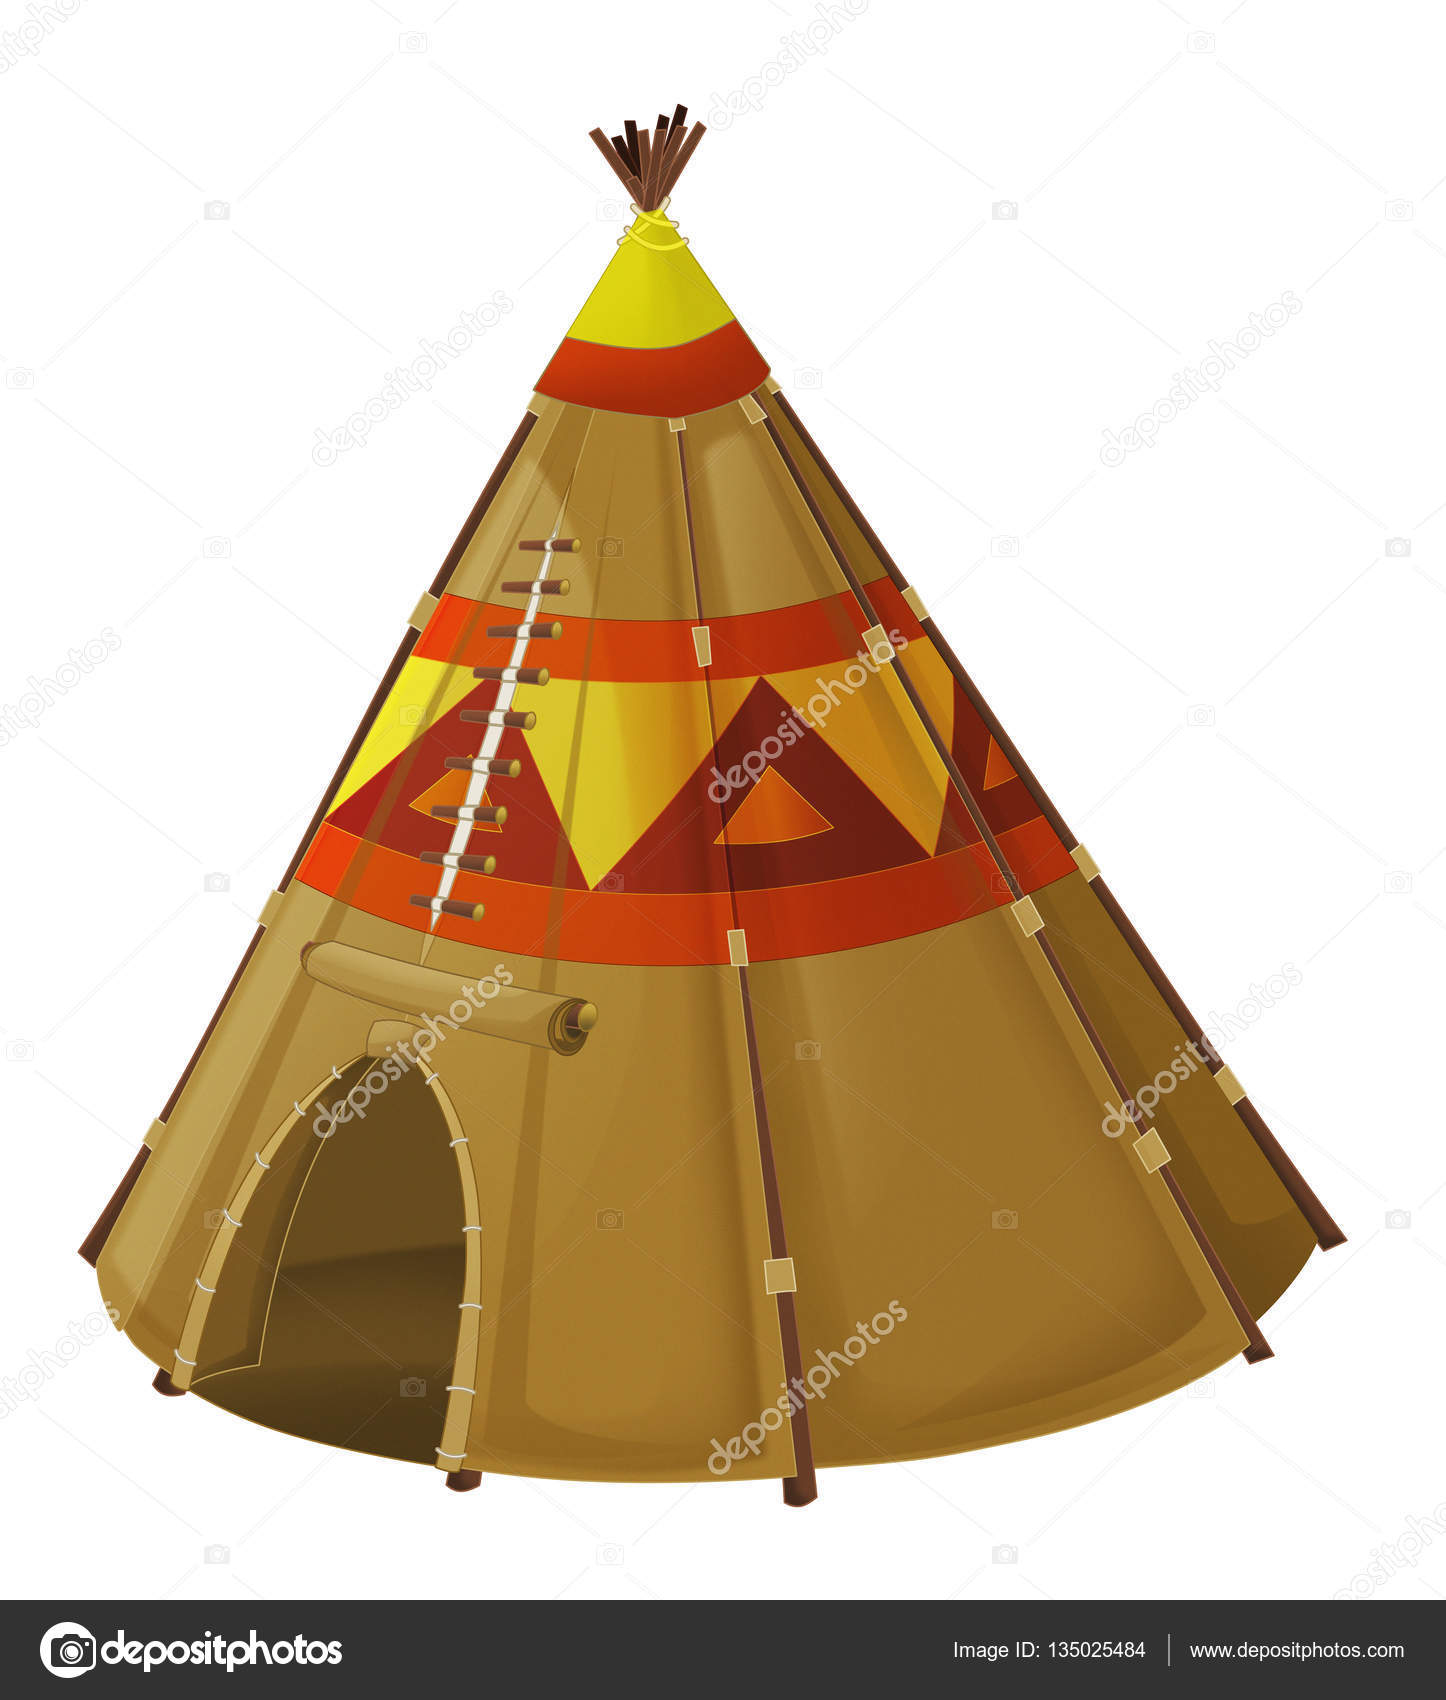 Cartoon happy and funny traditional isolated indian tent - for different fairy tales - illustration for children u2014 Photo by illustrator_hft  sc 1 st  Depositphotos & Cartoon traditional tent - tee pee u2014 Stock Photo © illustrator_hft ...